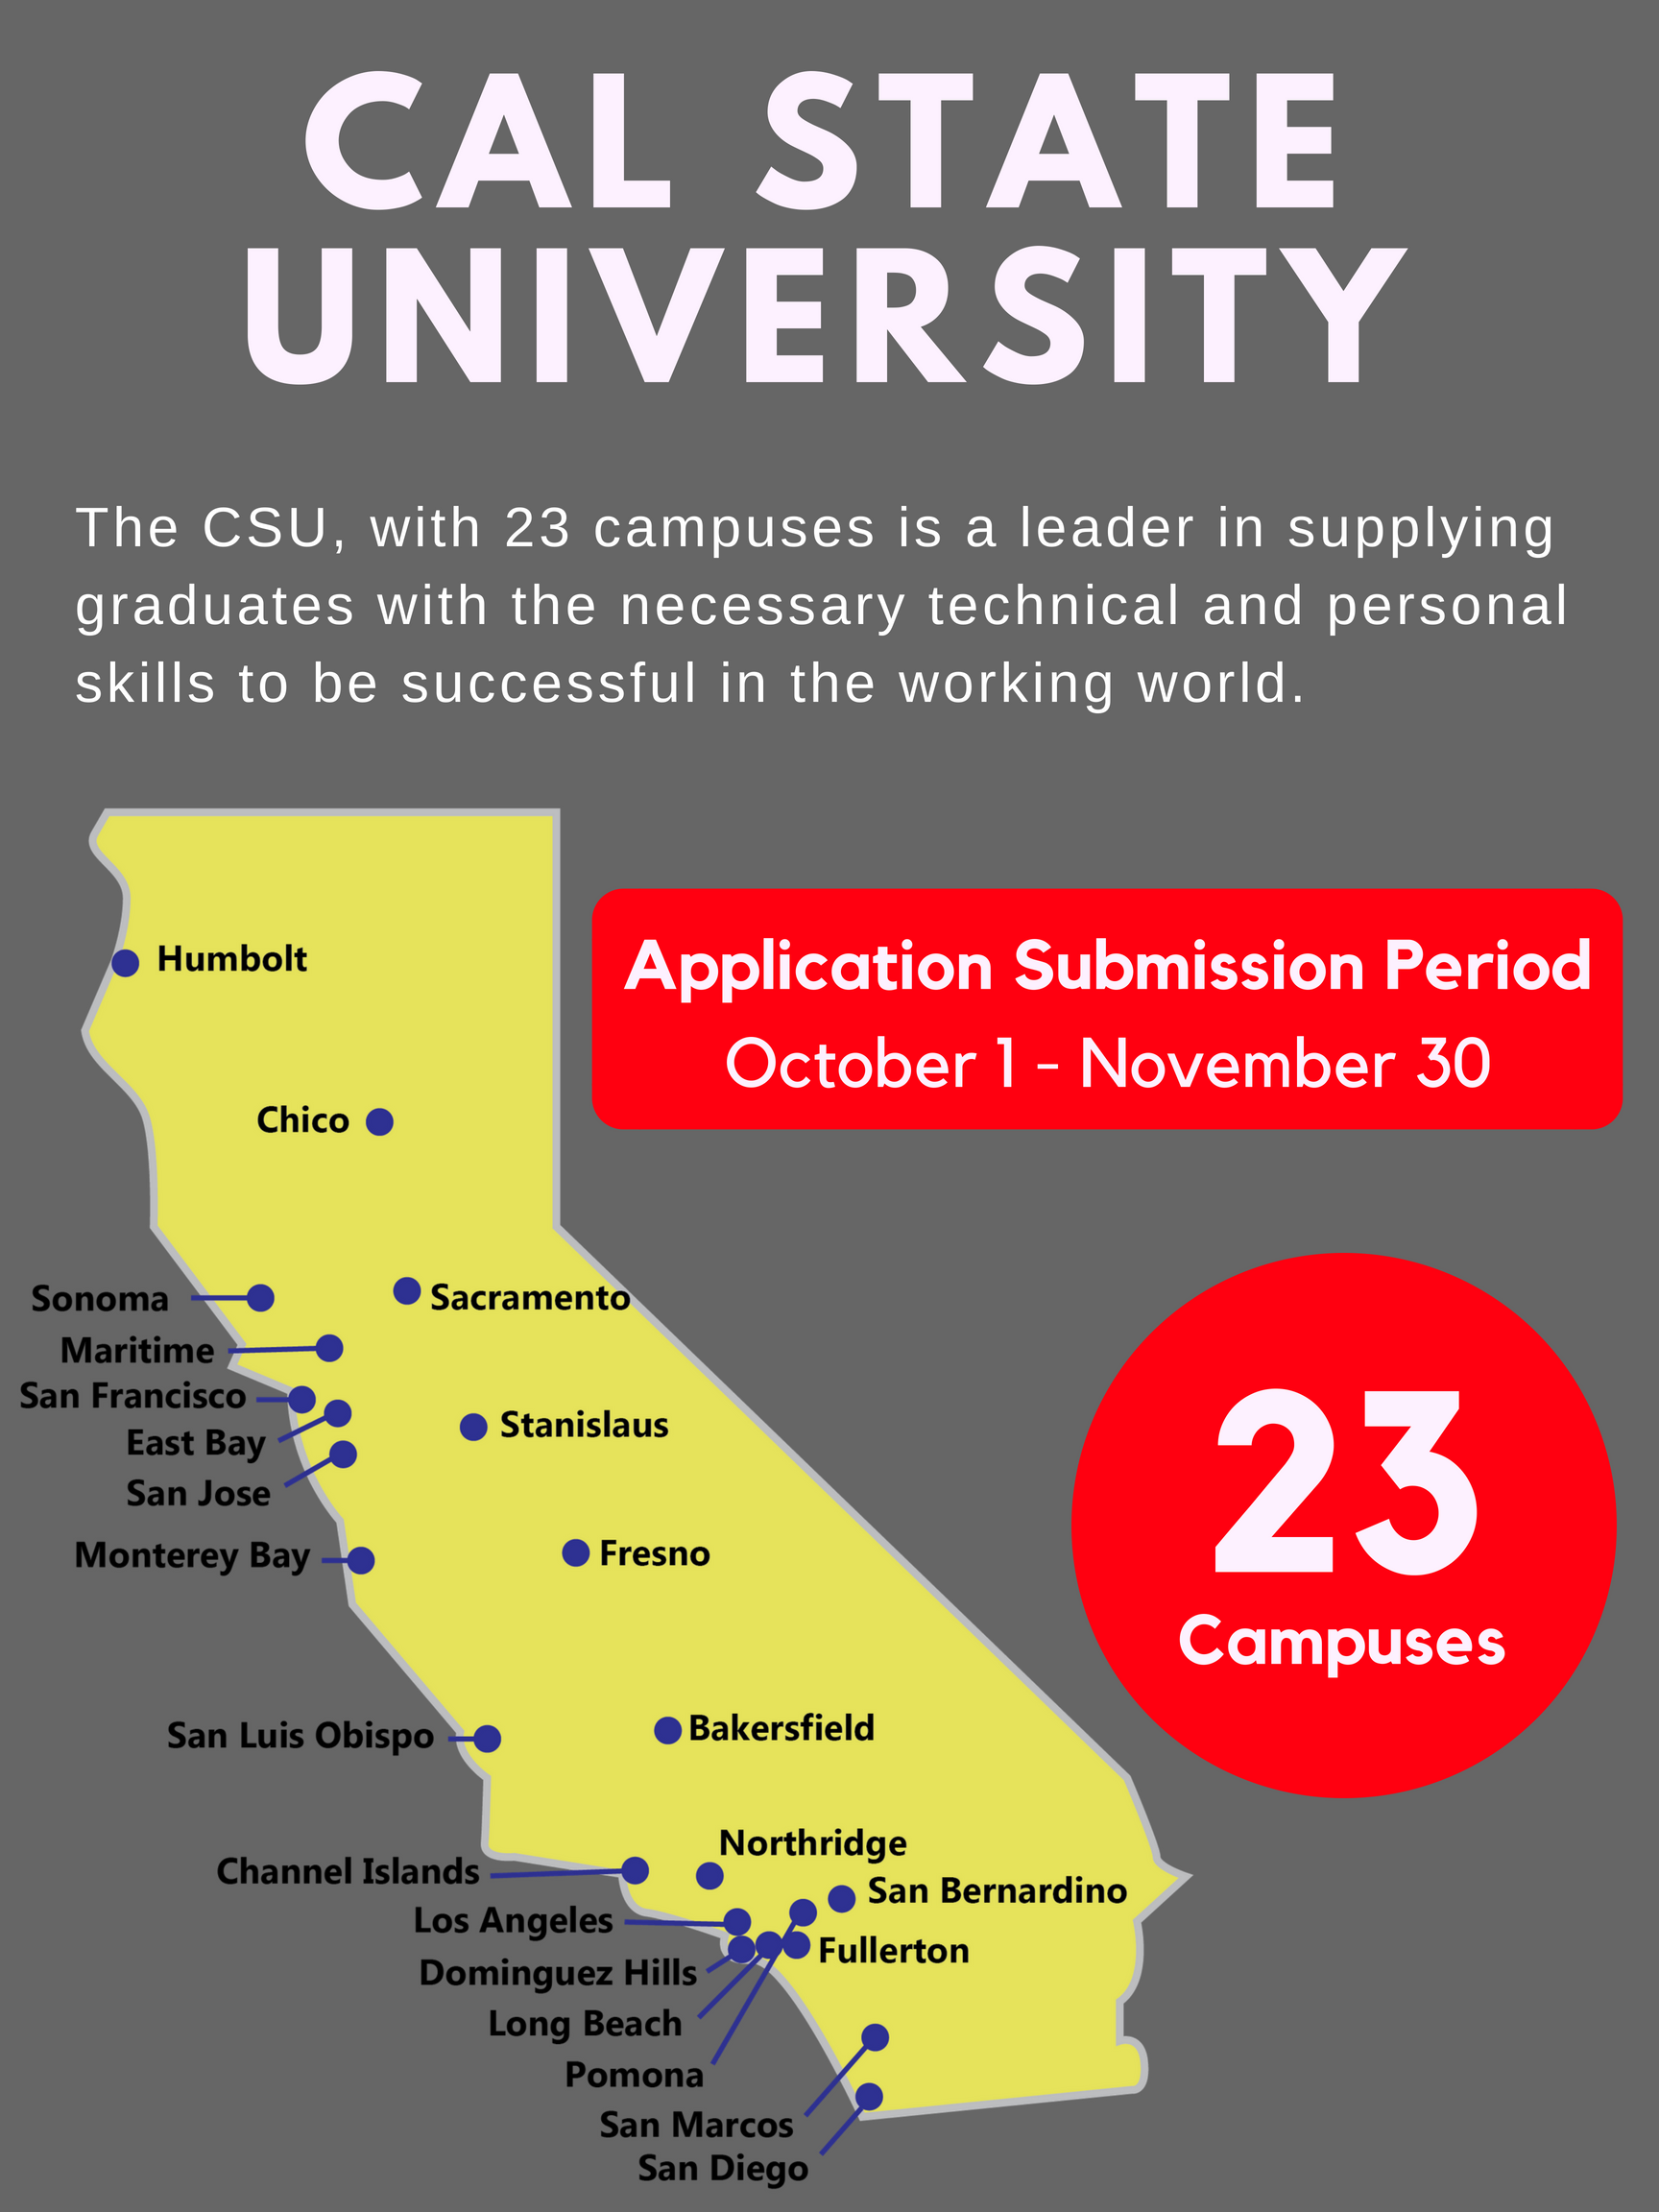 Cal State University System